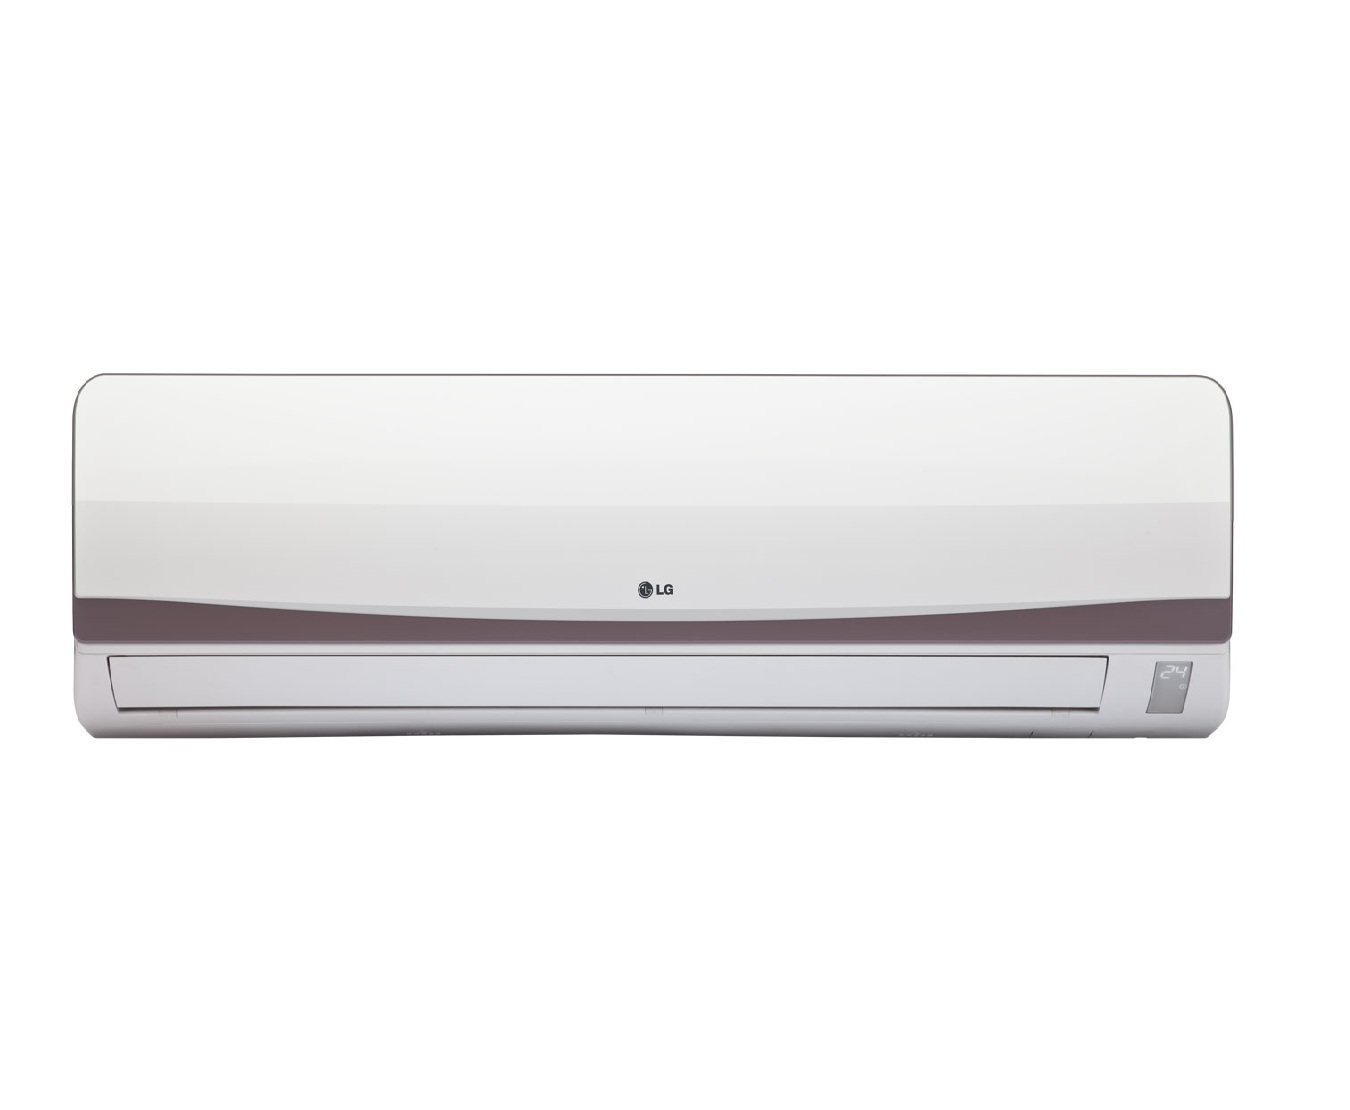 Lg 1 Ton Split Air Conditioner Lsa3ar2m Price In